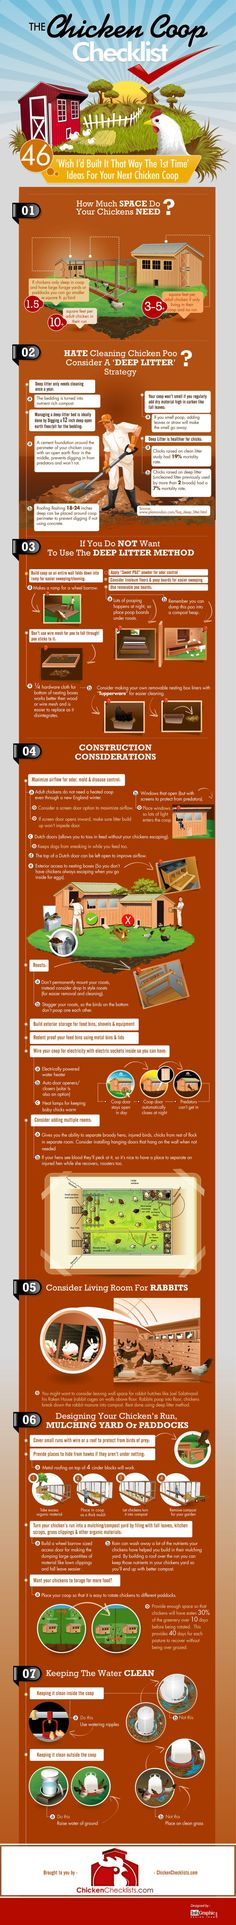 Chicken Coop Check List http://tbnranch.com/2013/09/22/checklist-for-building-a-chicken-coop/